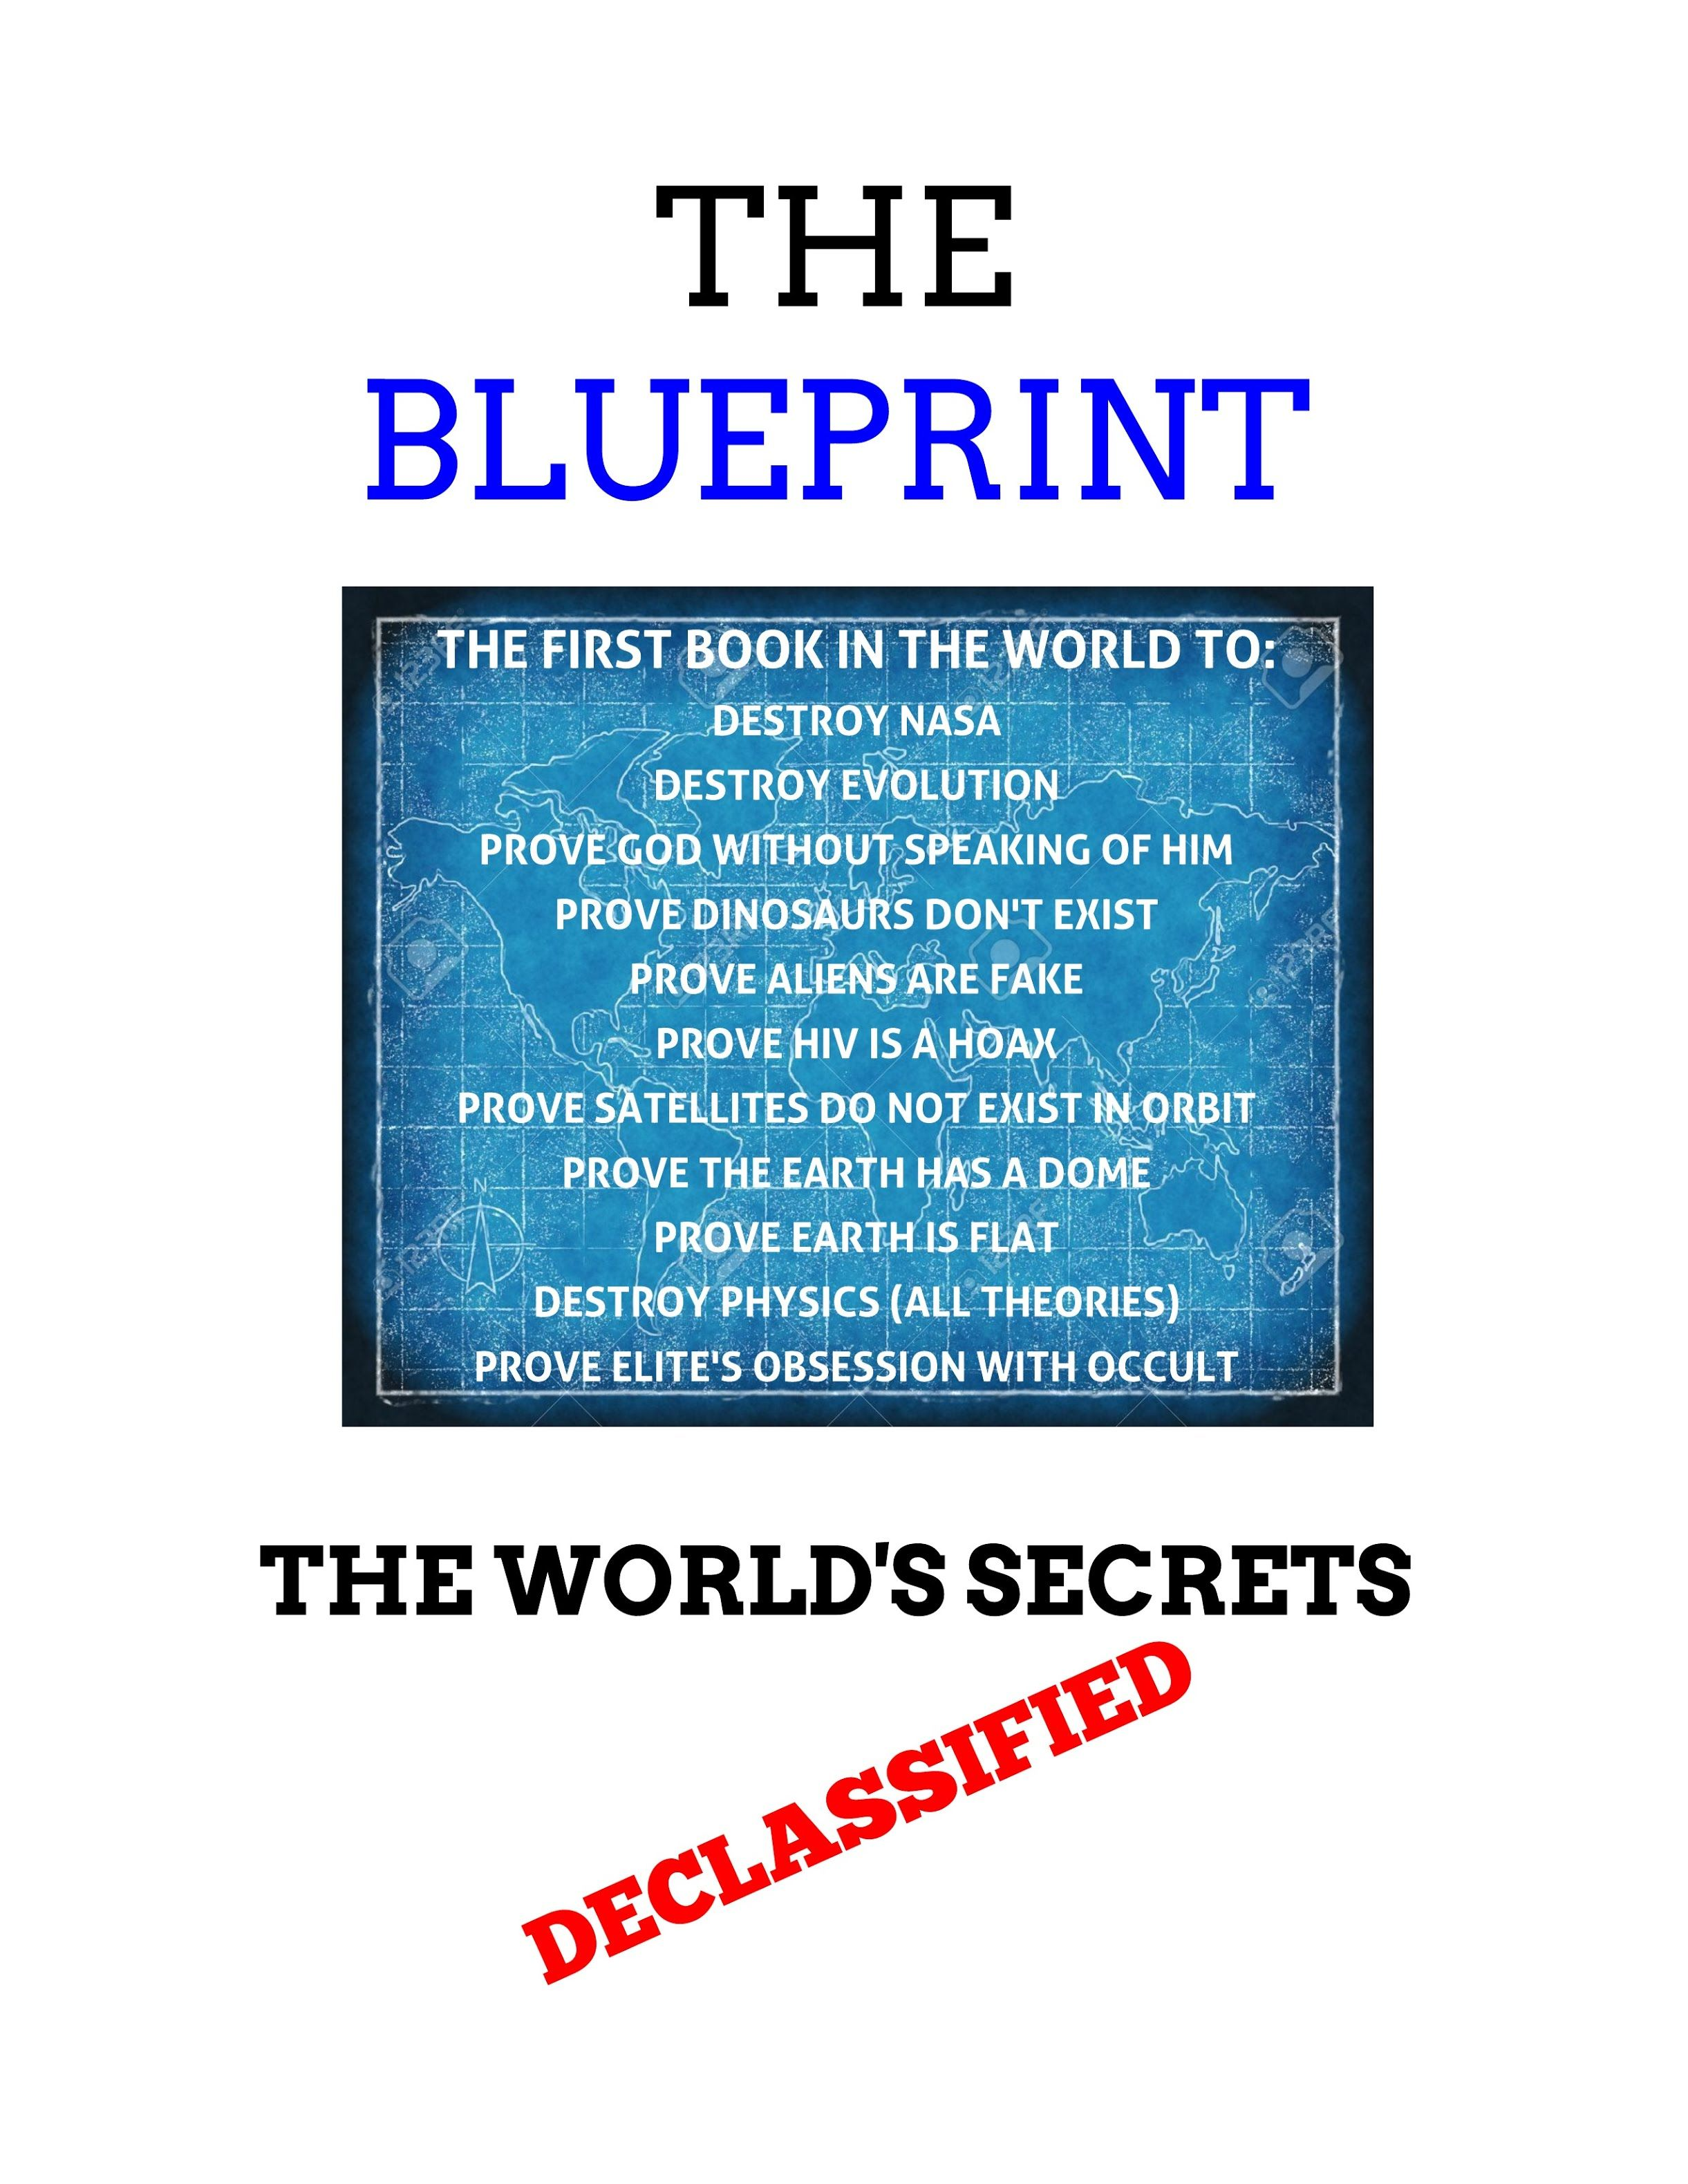 Satellites are a hoax documented proof operation blue beam is coming explore flat earth deer hunting and more malvernweather Choice Image